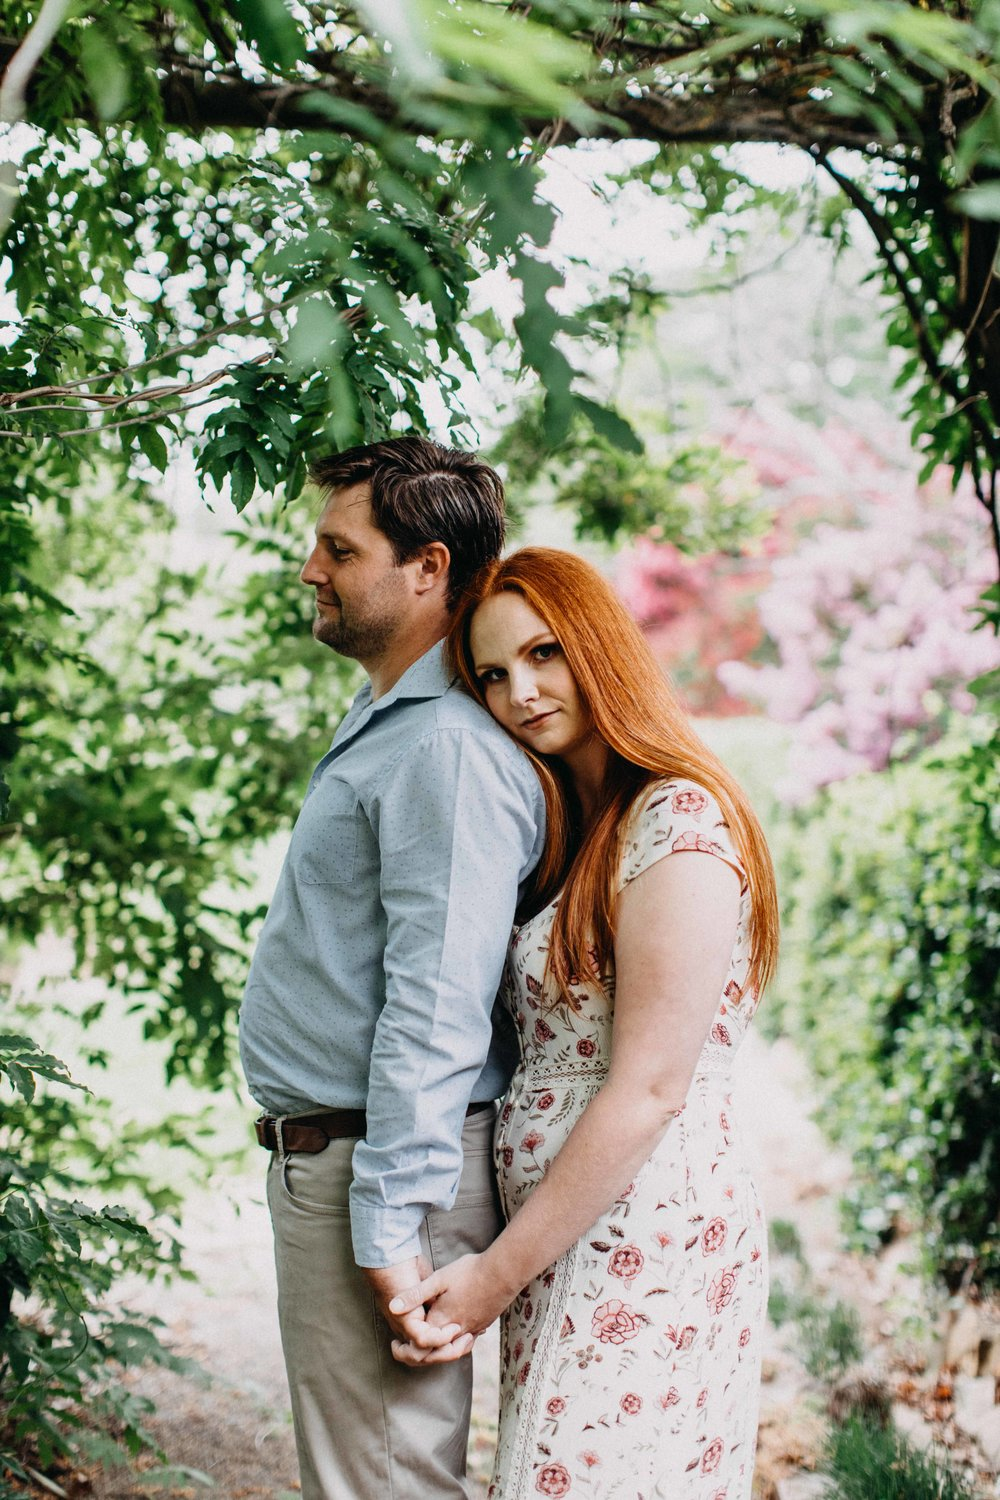 camden-engagement-session-wollondilly-photography-nadine-bernard-14.jpg